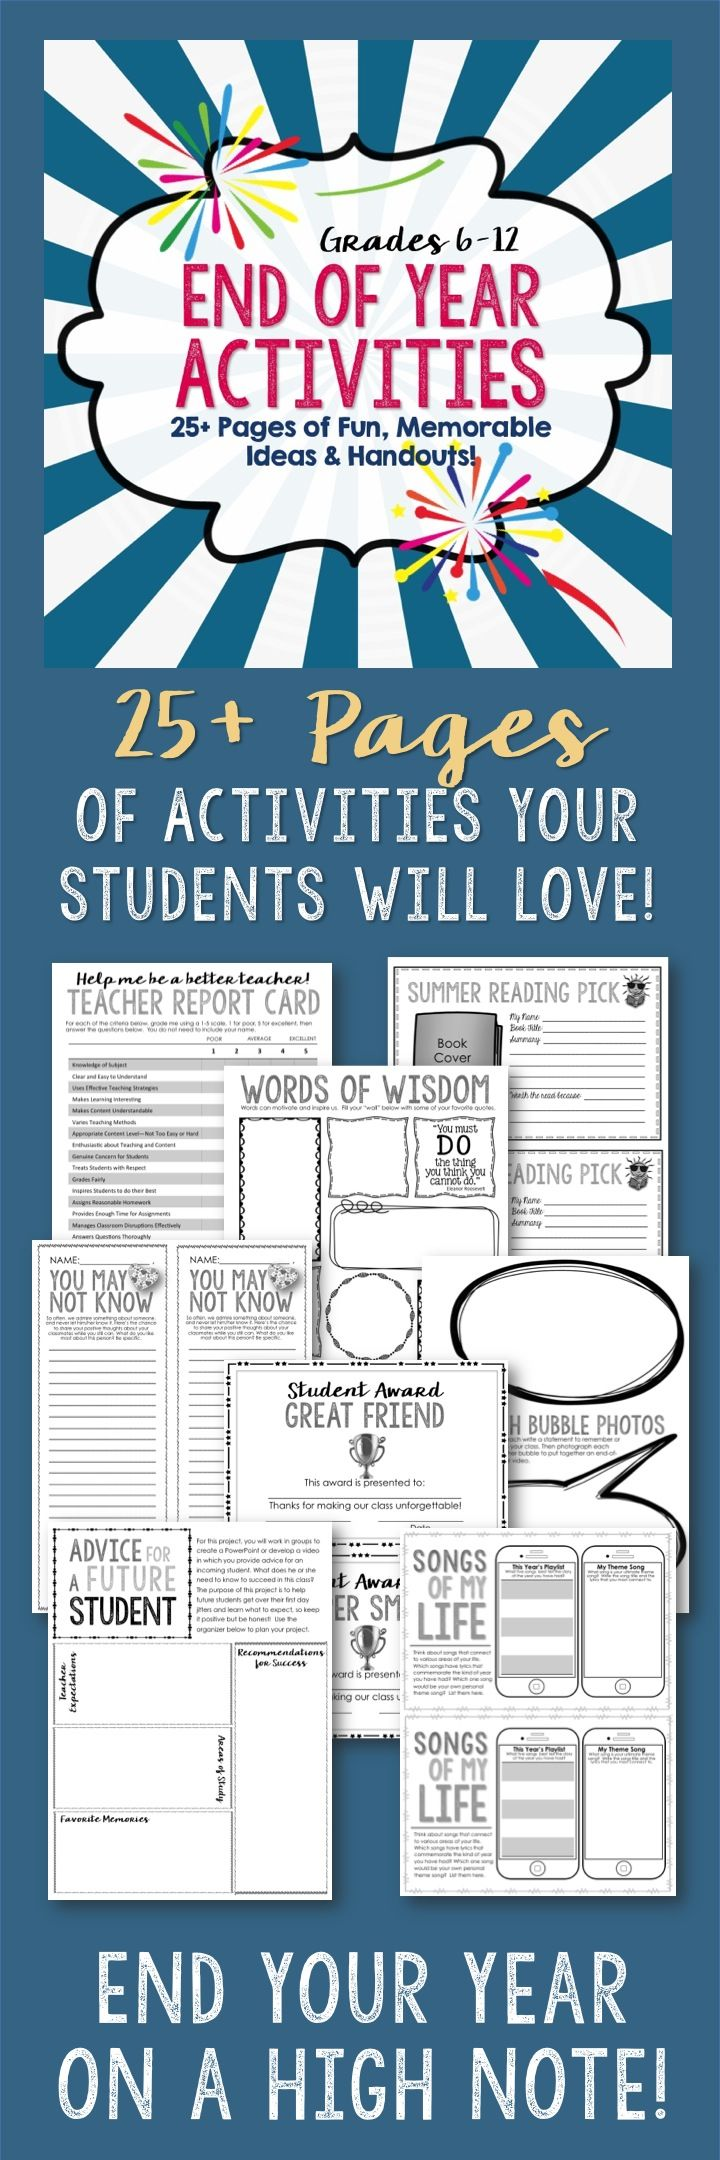 End Of Year Fun Worksheets : End of year activities pages fun memorable